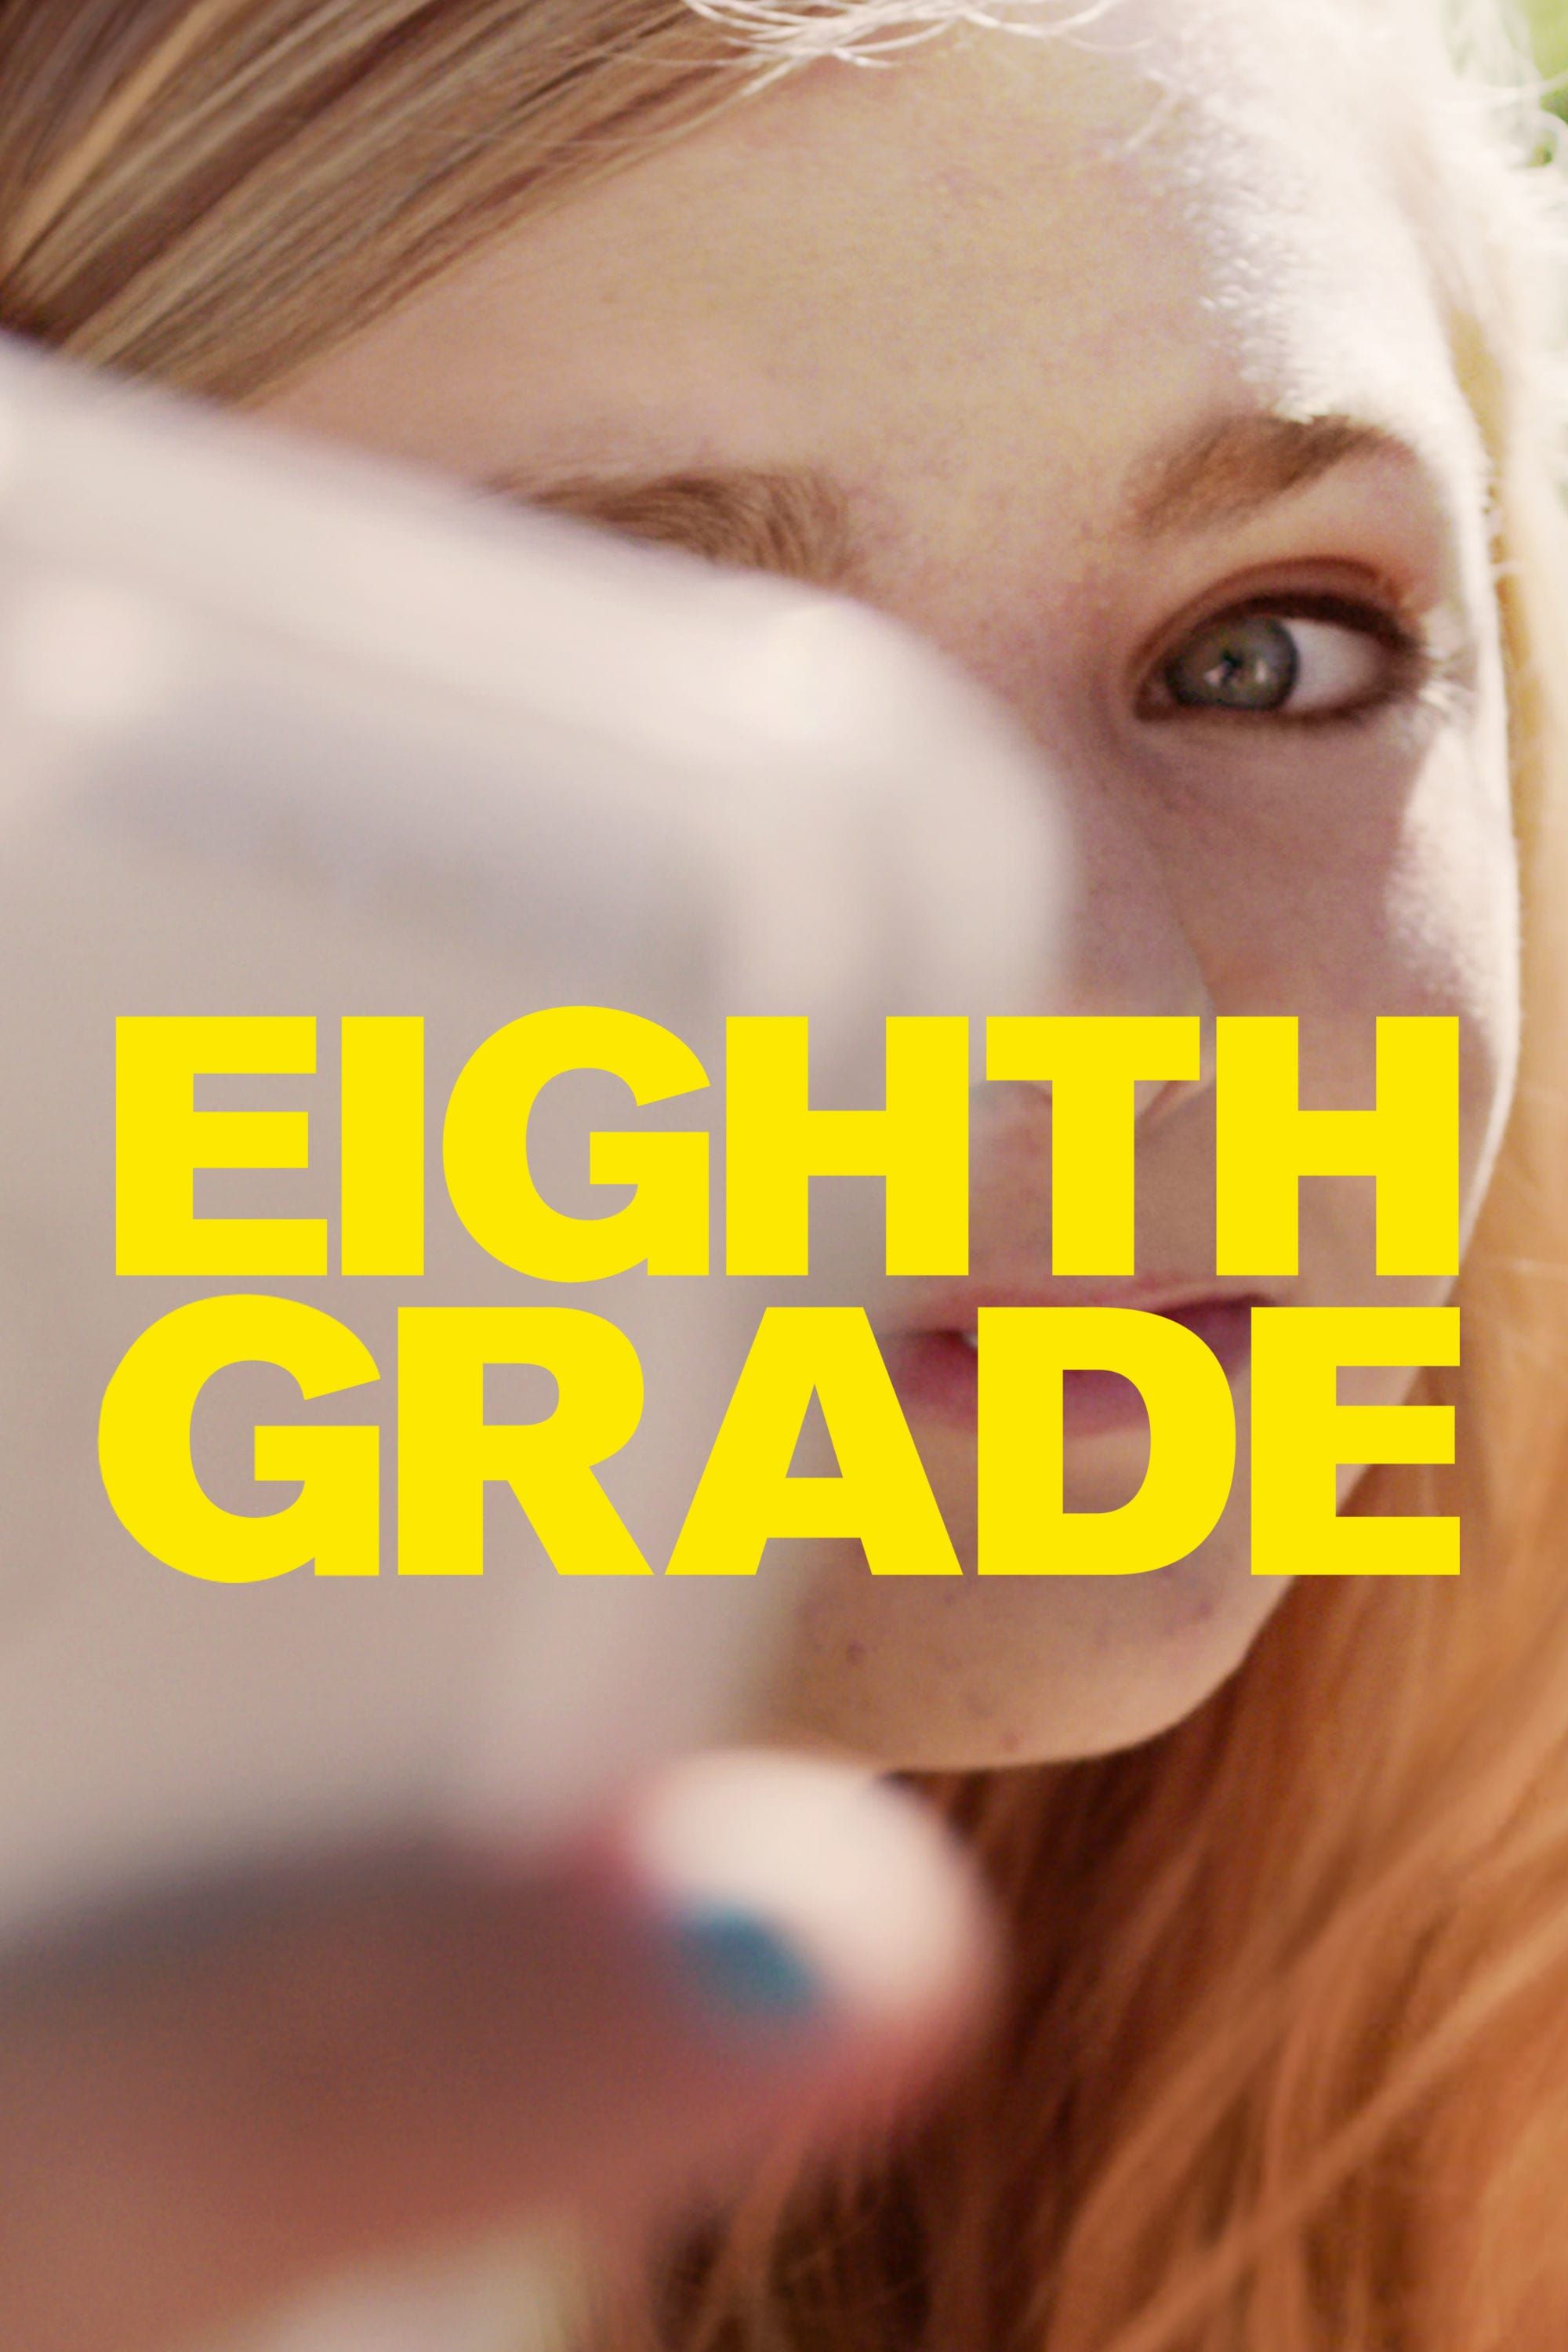 Film Discussion: Eighth Grade